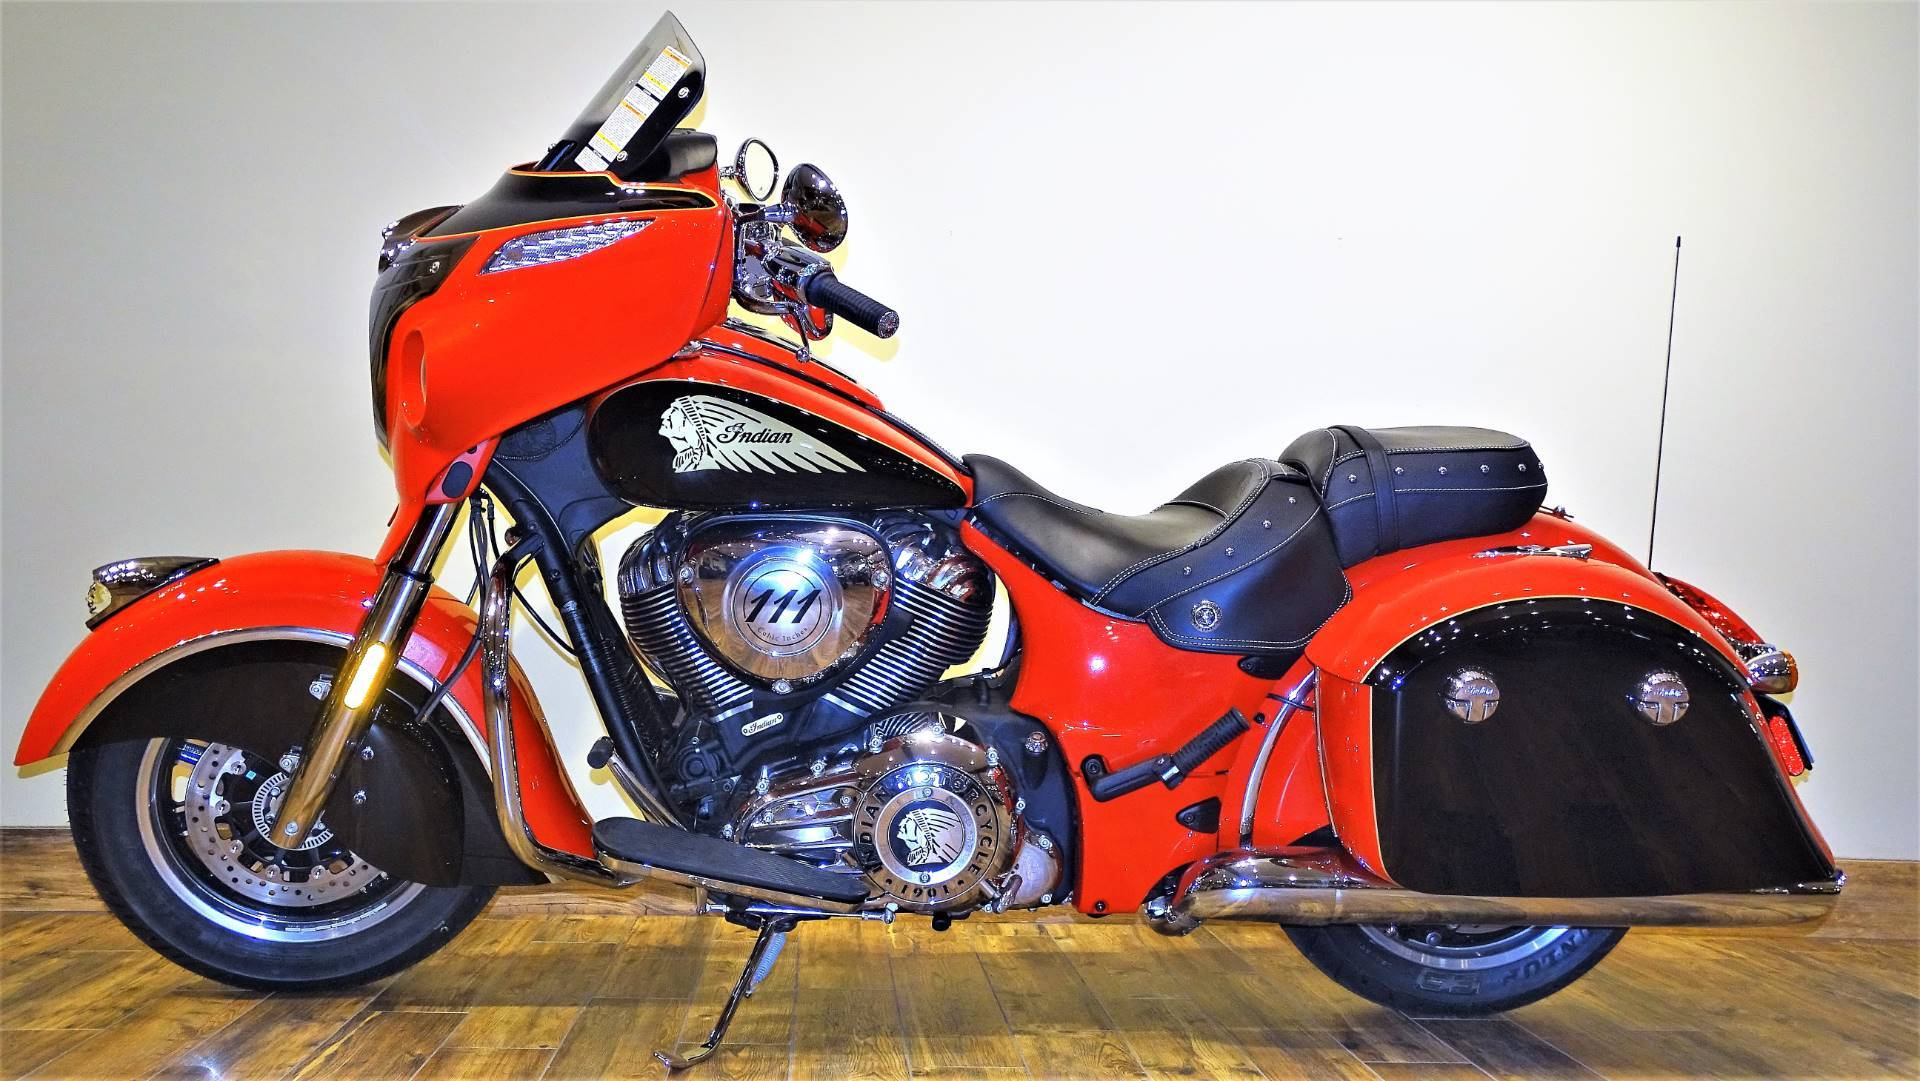 2017 Indian Chieftain 2